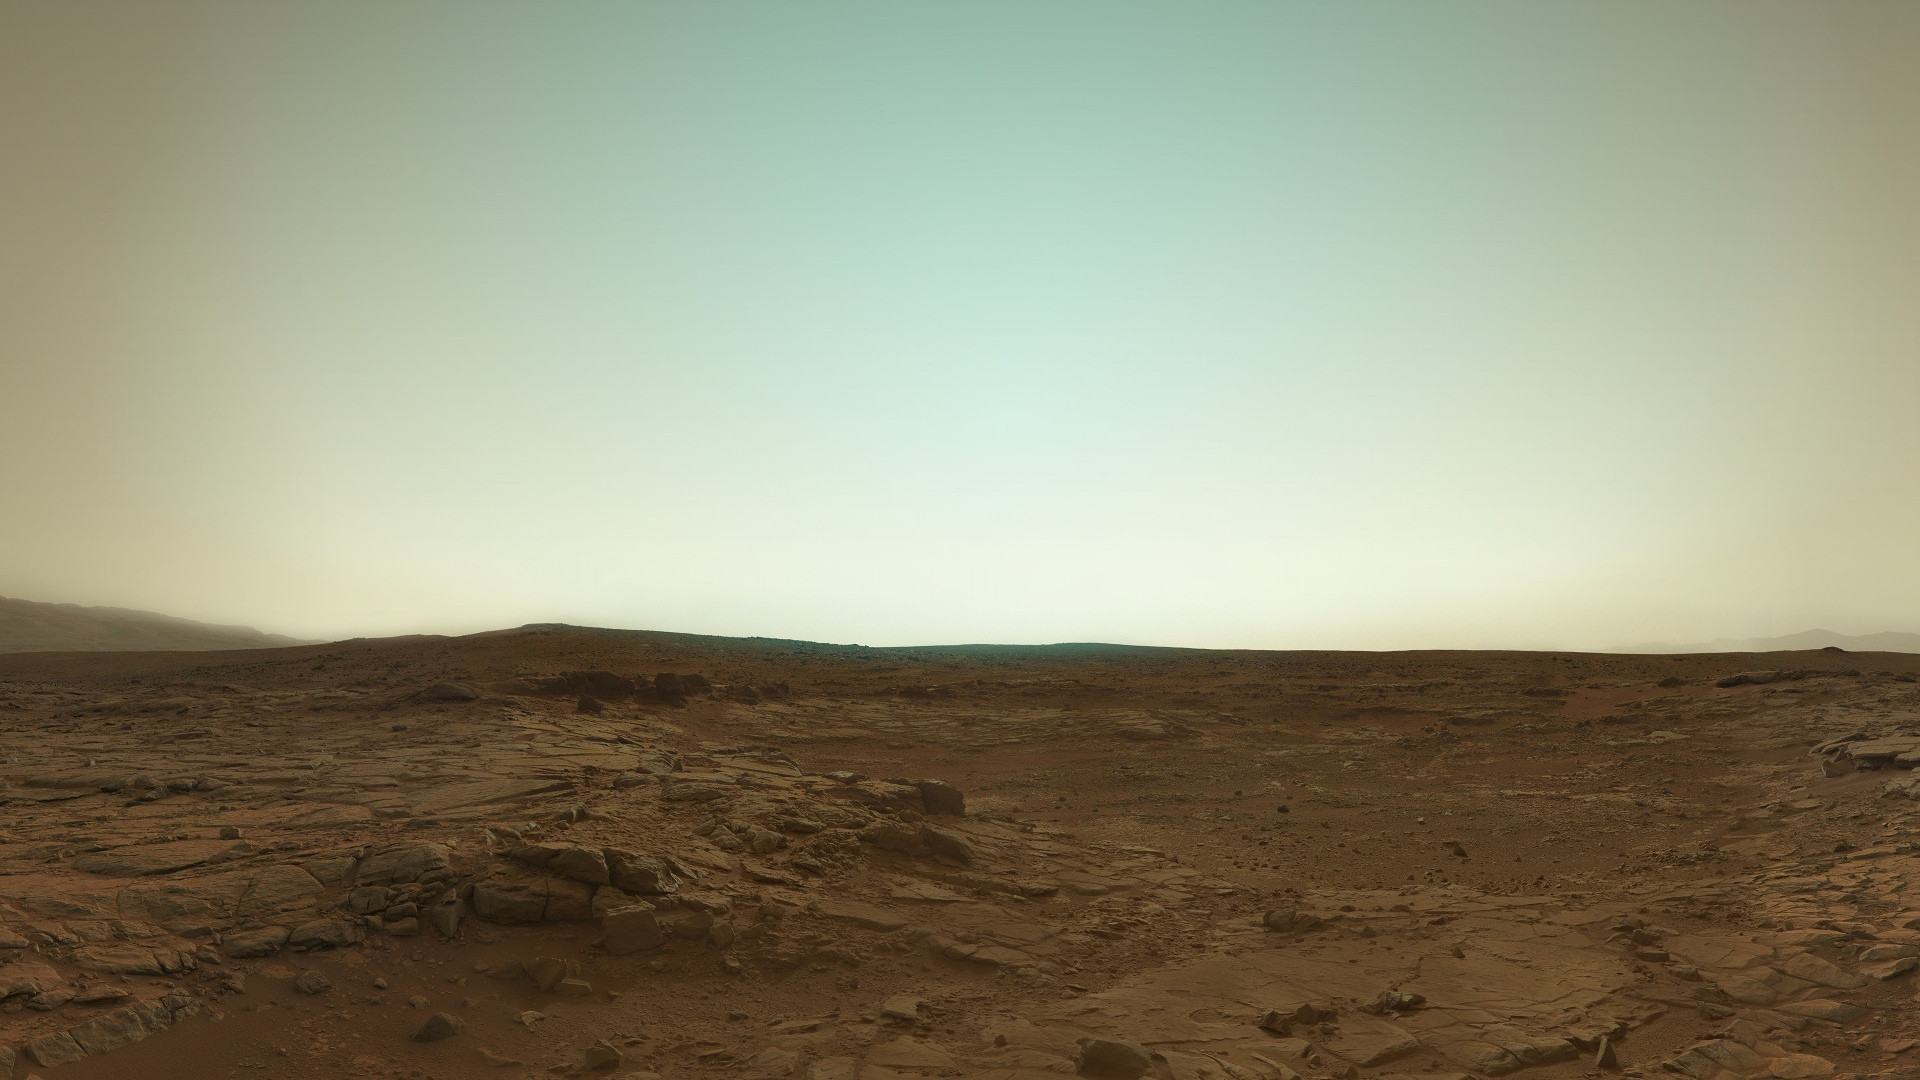 Mars in true color from Curiosity  [1920x1080] : wallpaper